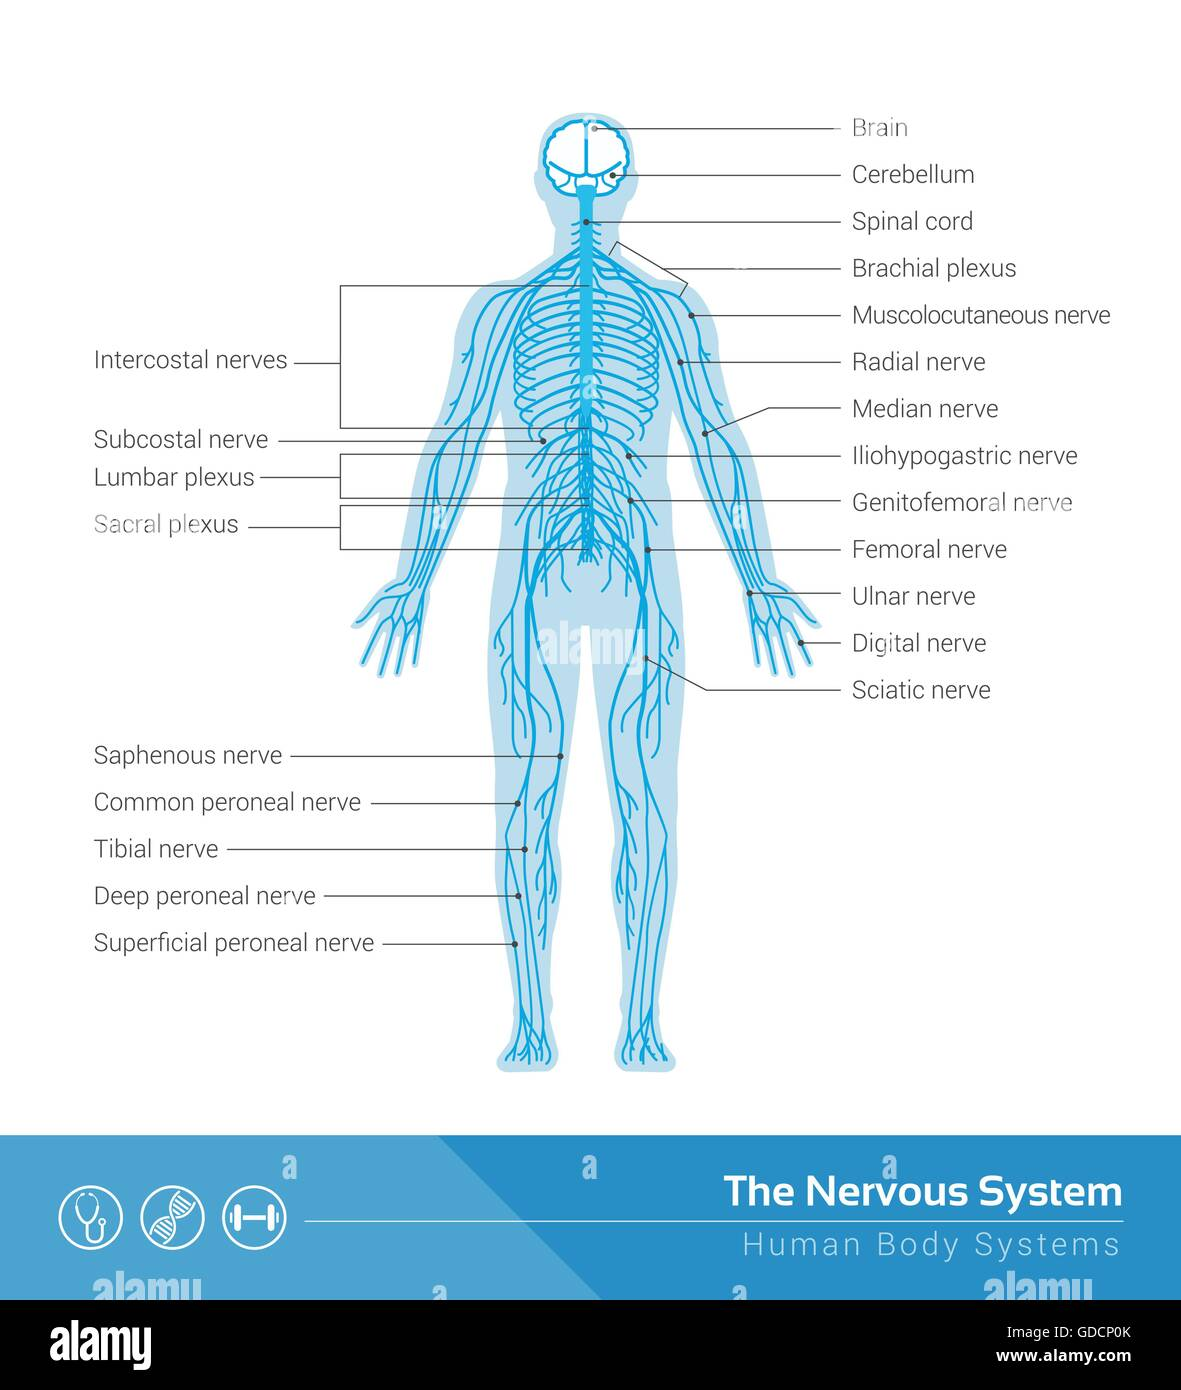 The human nervous system vector medical illustration - Stock Image